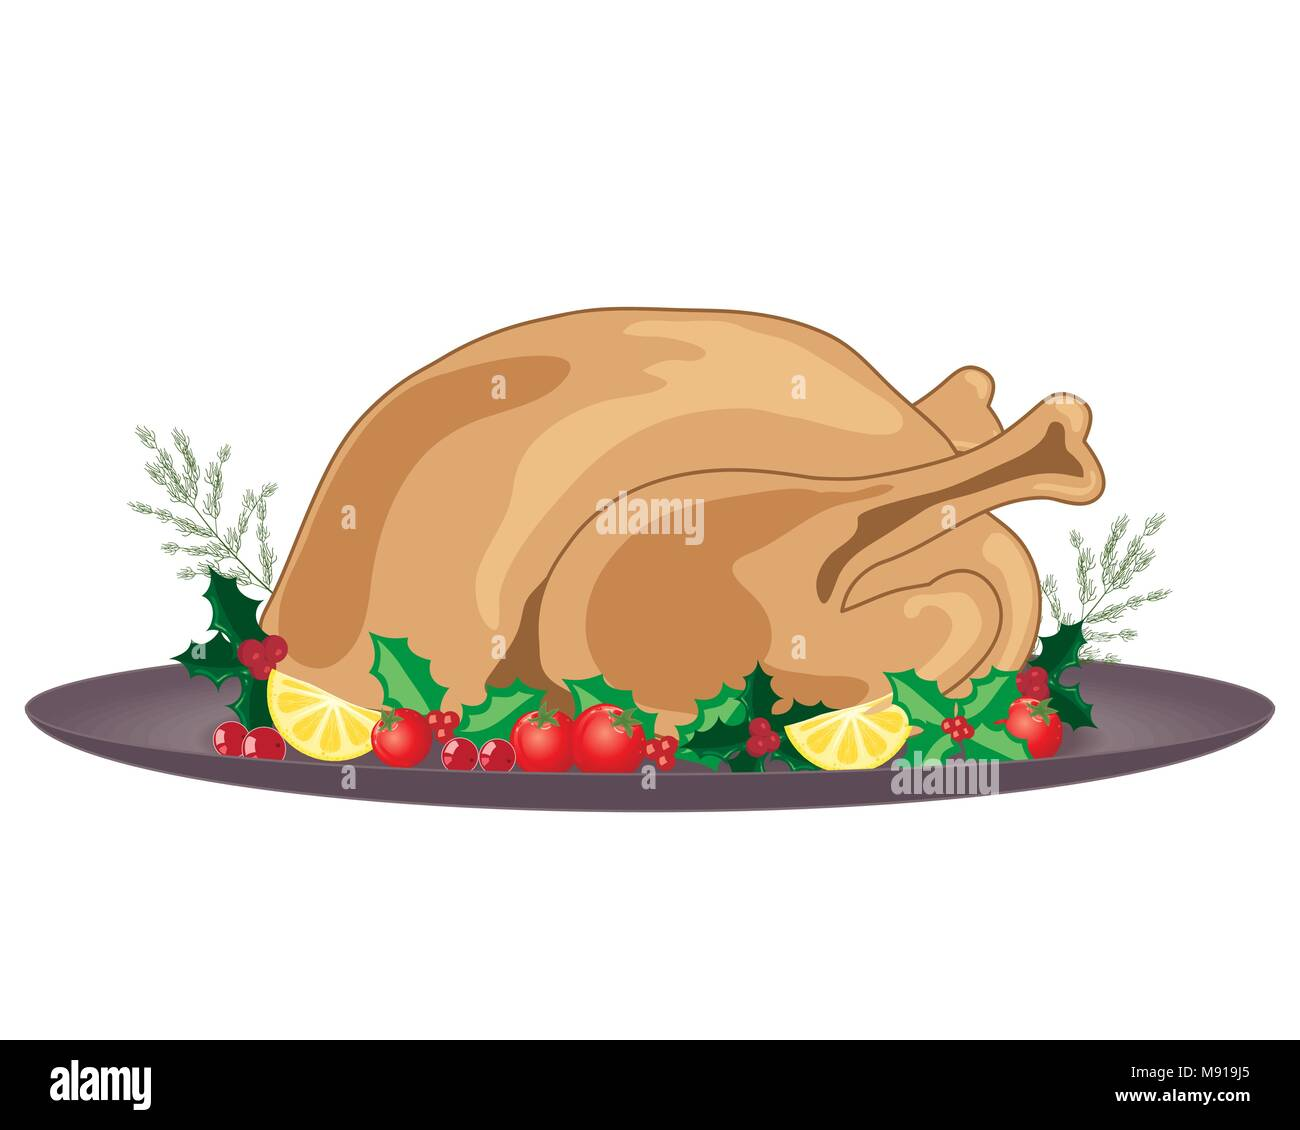 a vector illustration in eps 10 format of a cooked and dressed Christmas turkey with holly decoration and gray plate on a white background Stock Vector